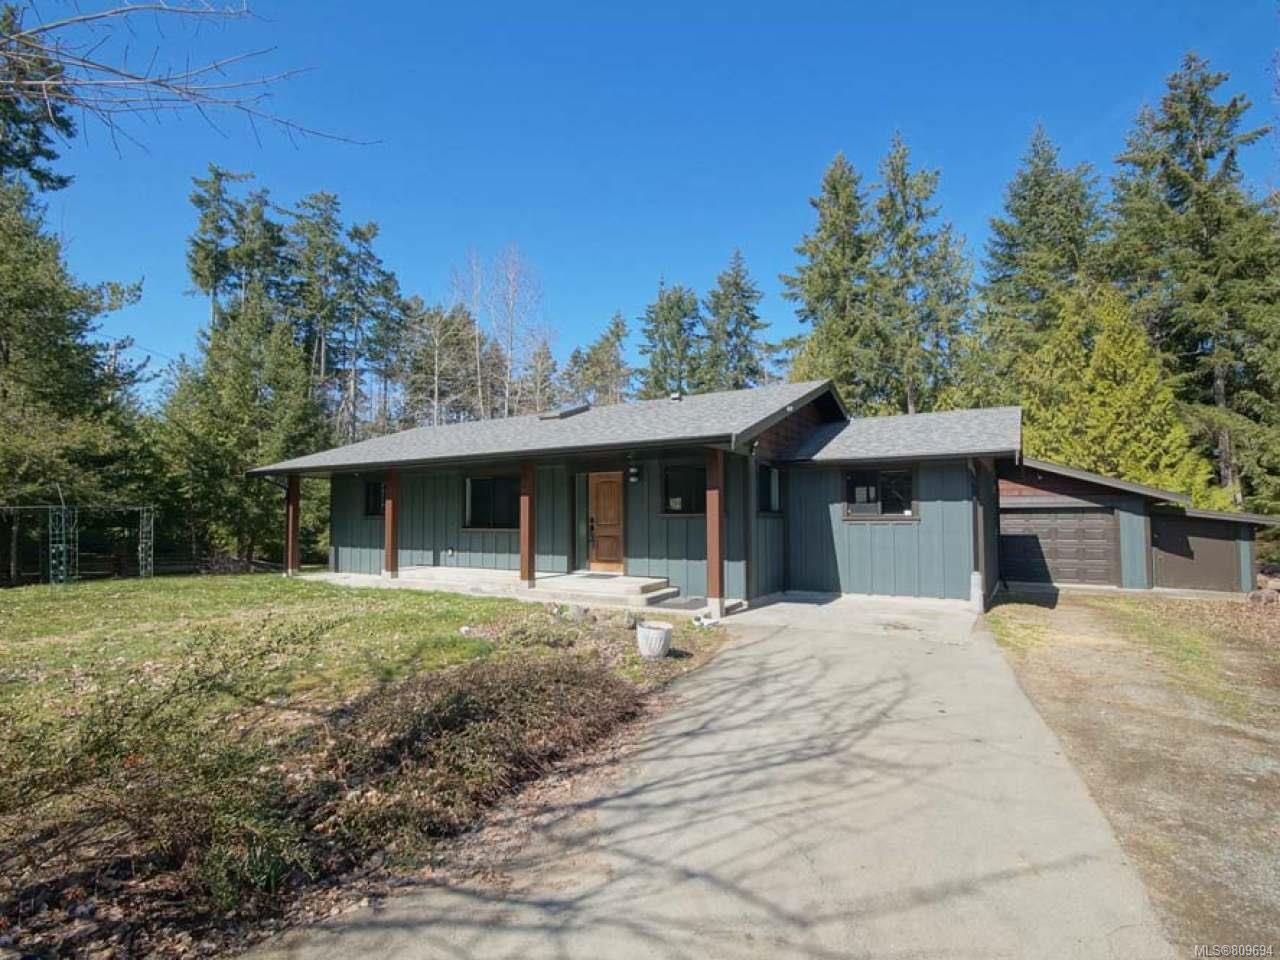 Main Photo: 3195 DOGLEG ROAD in HILLIERS: PQ Errington/Coombs/Hilliers House for sale (Parksville/Qualicum)  : MLS®# 809694